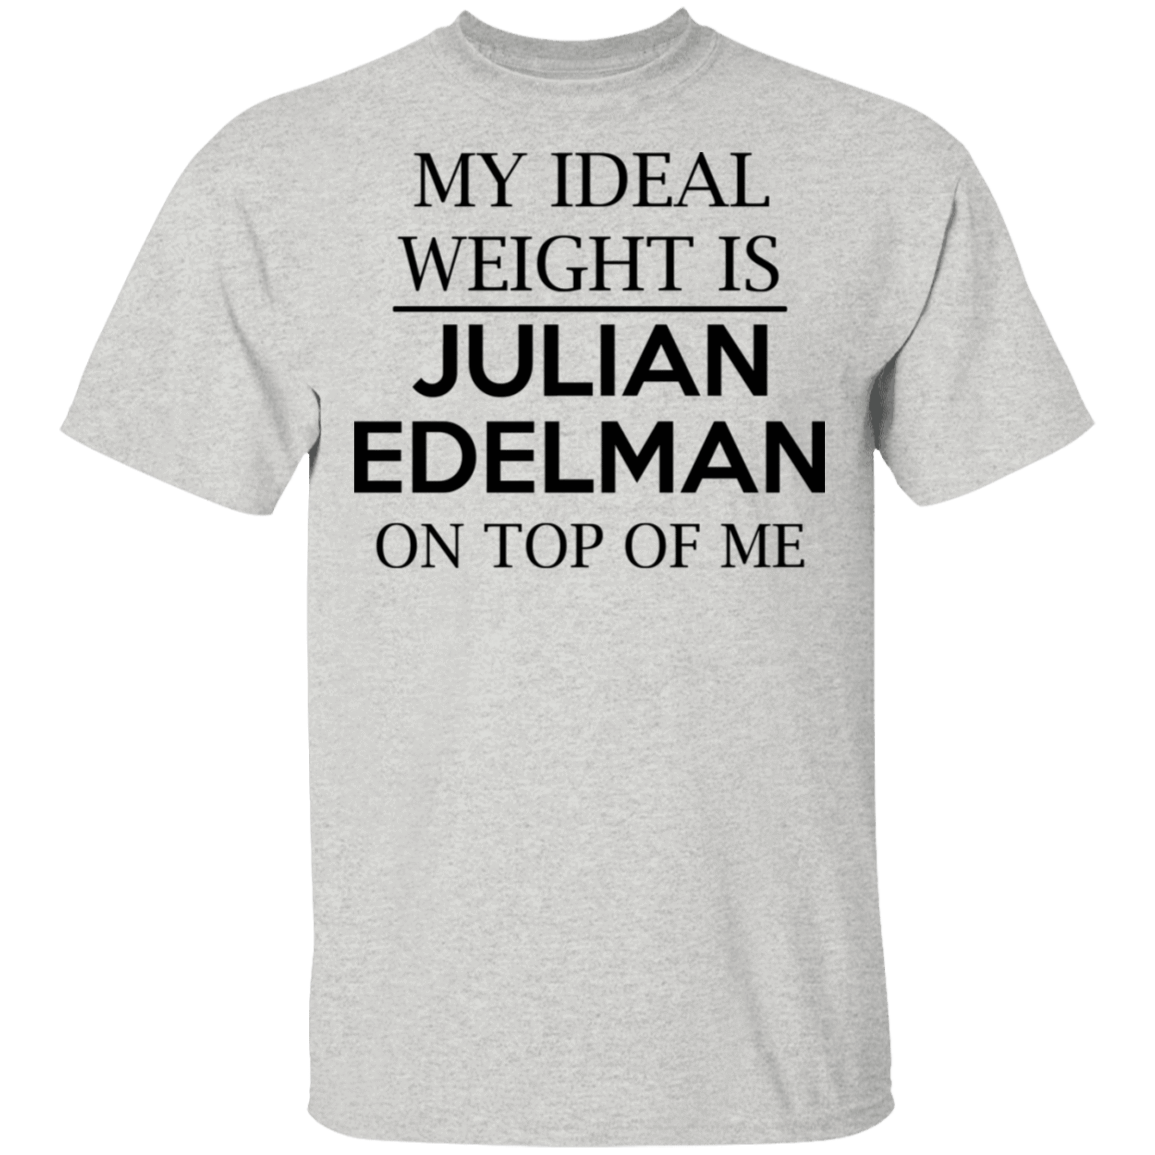 My Ideal Weight Is Julian Edelman On Top Of Me T-Shirts, Hoodies, Tank 22-2475-79345116-12568 - Tee Ript